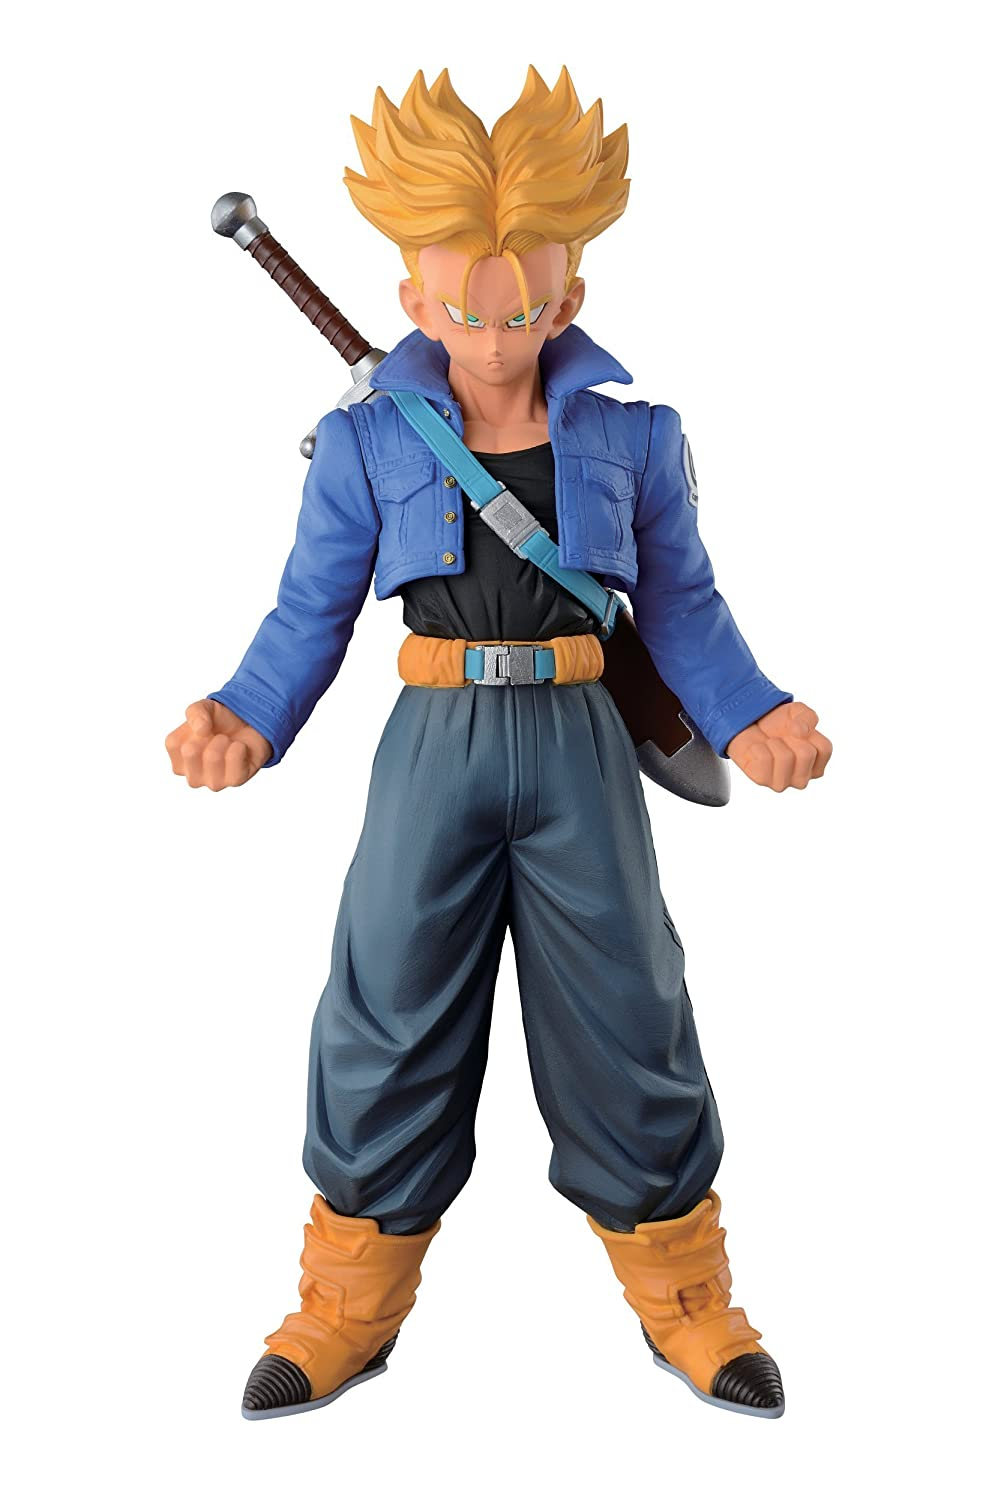 amazon ドラゴンボールz master stars piece the super saiyan trunks